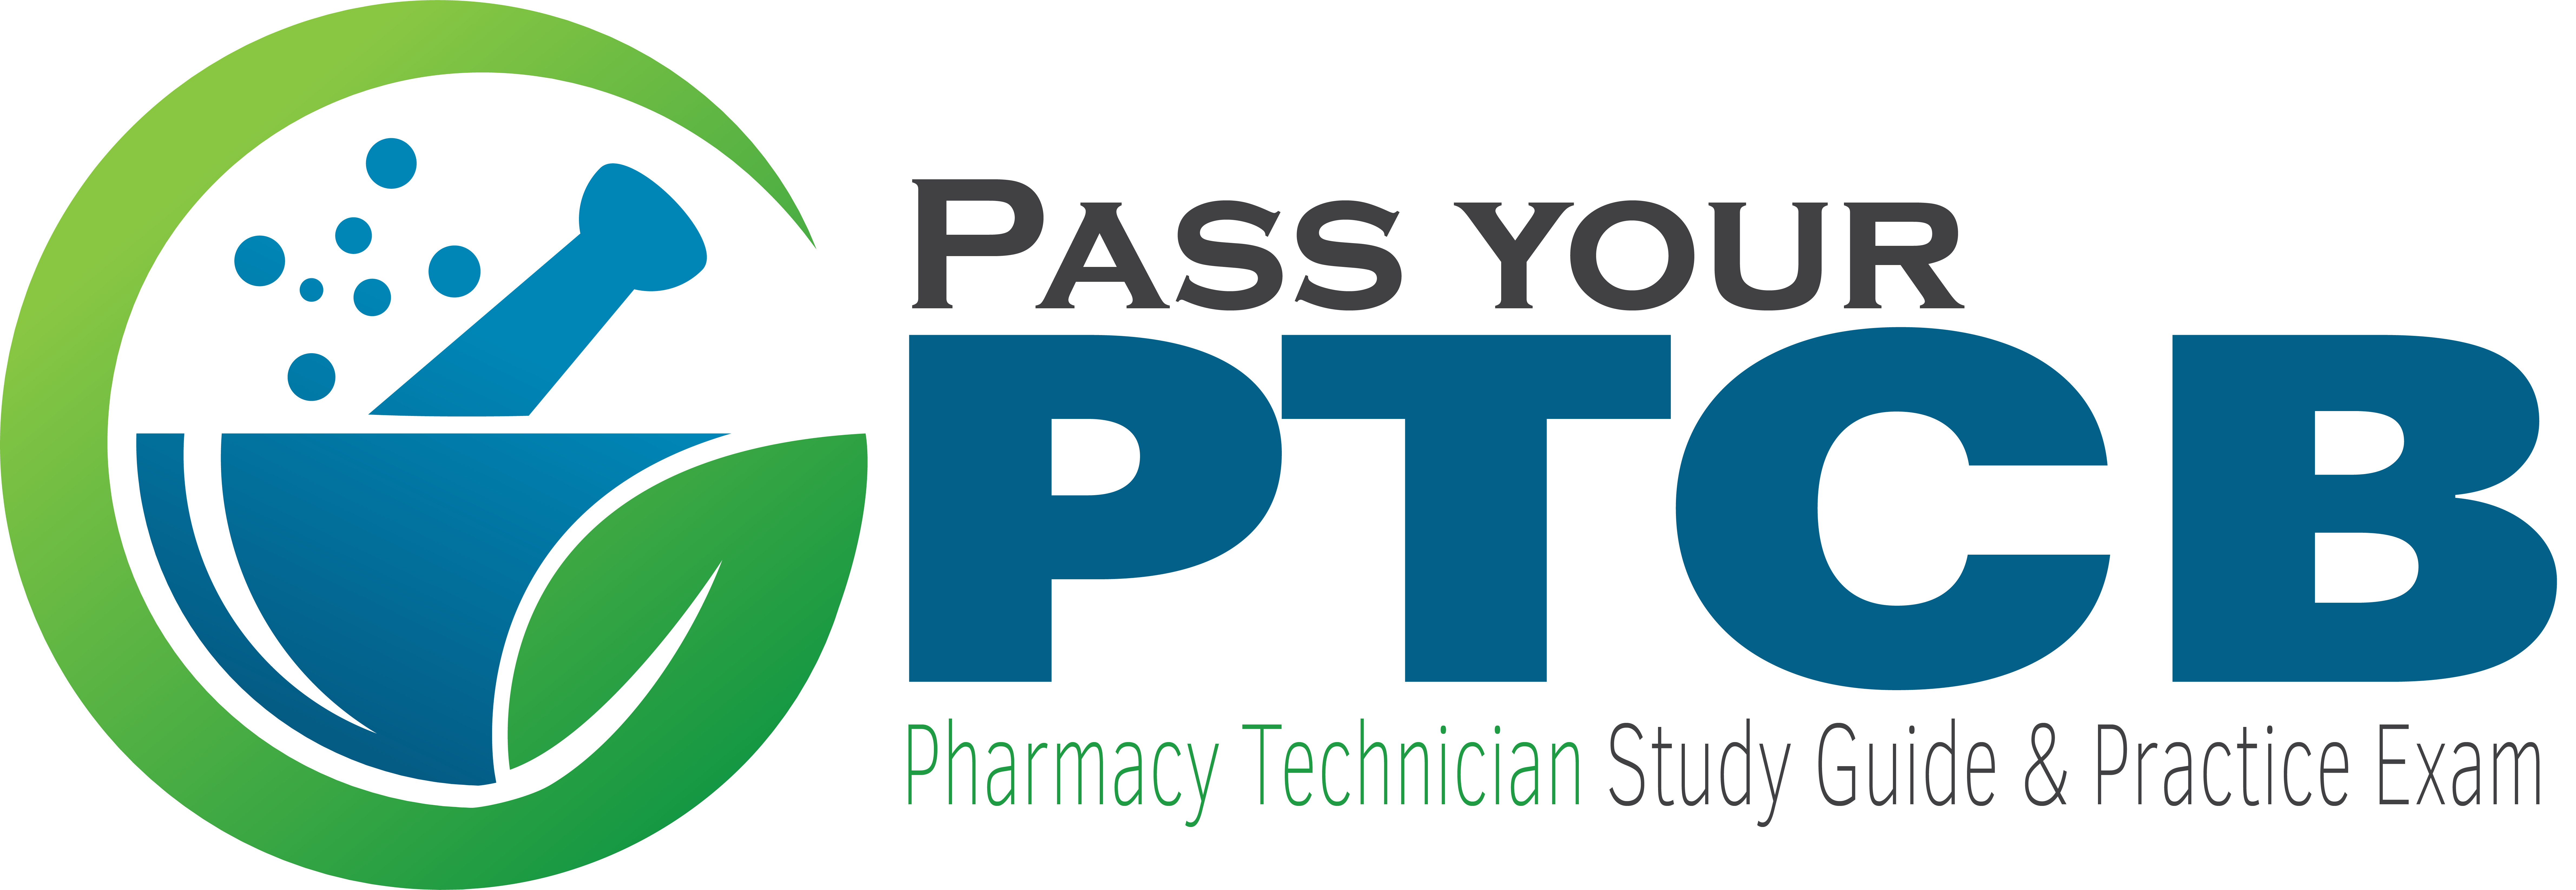 200 Page Study Guide for the Pharmacy Technician Exam (PTCB & ExCPT) Includes top 200 Drugs Cheat Sheet & Over 500 Practice Questions.